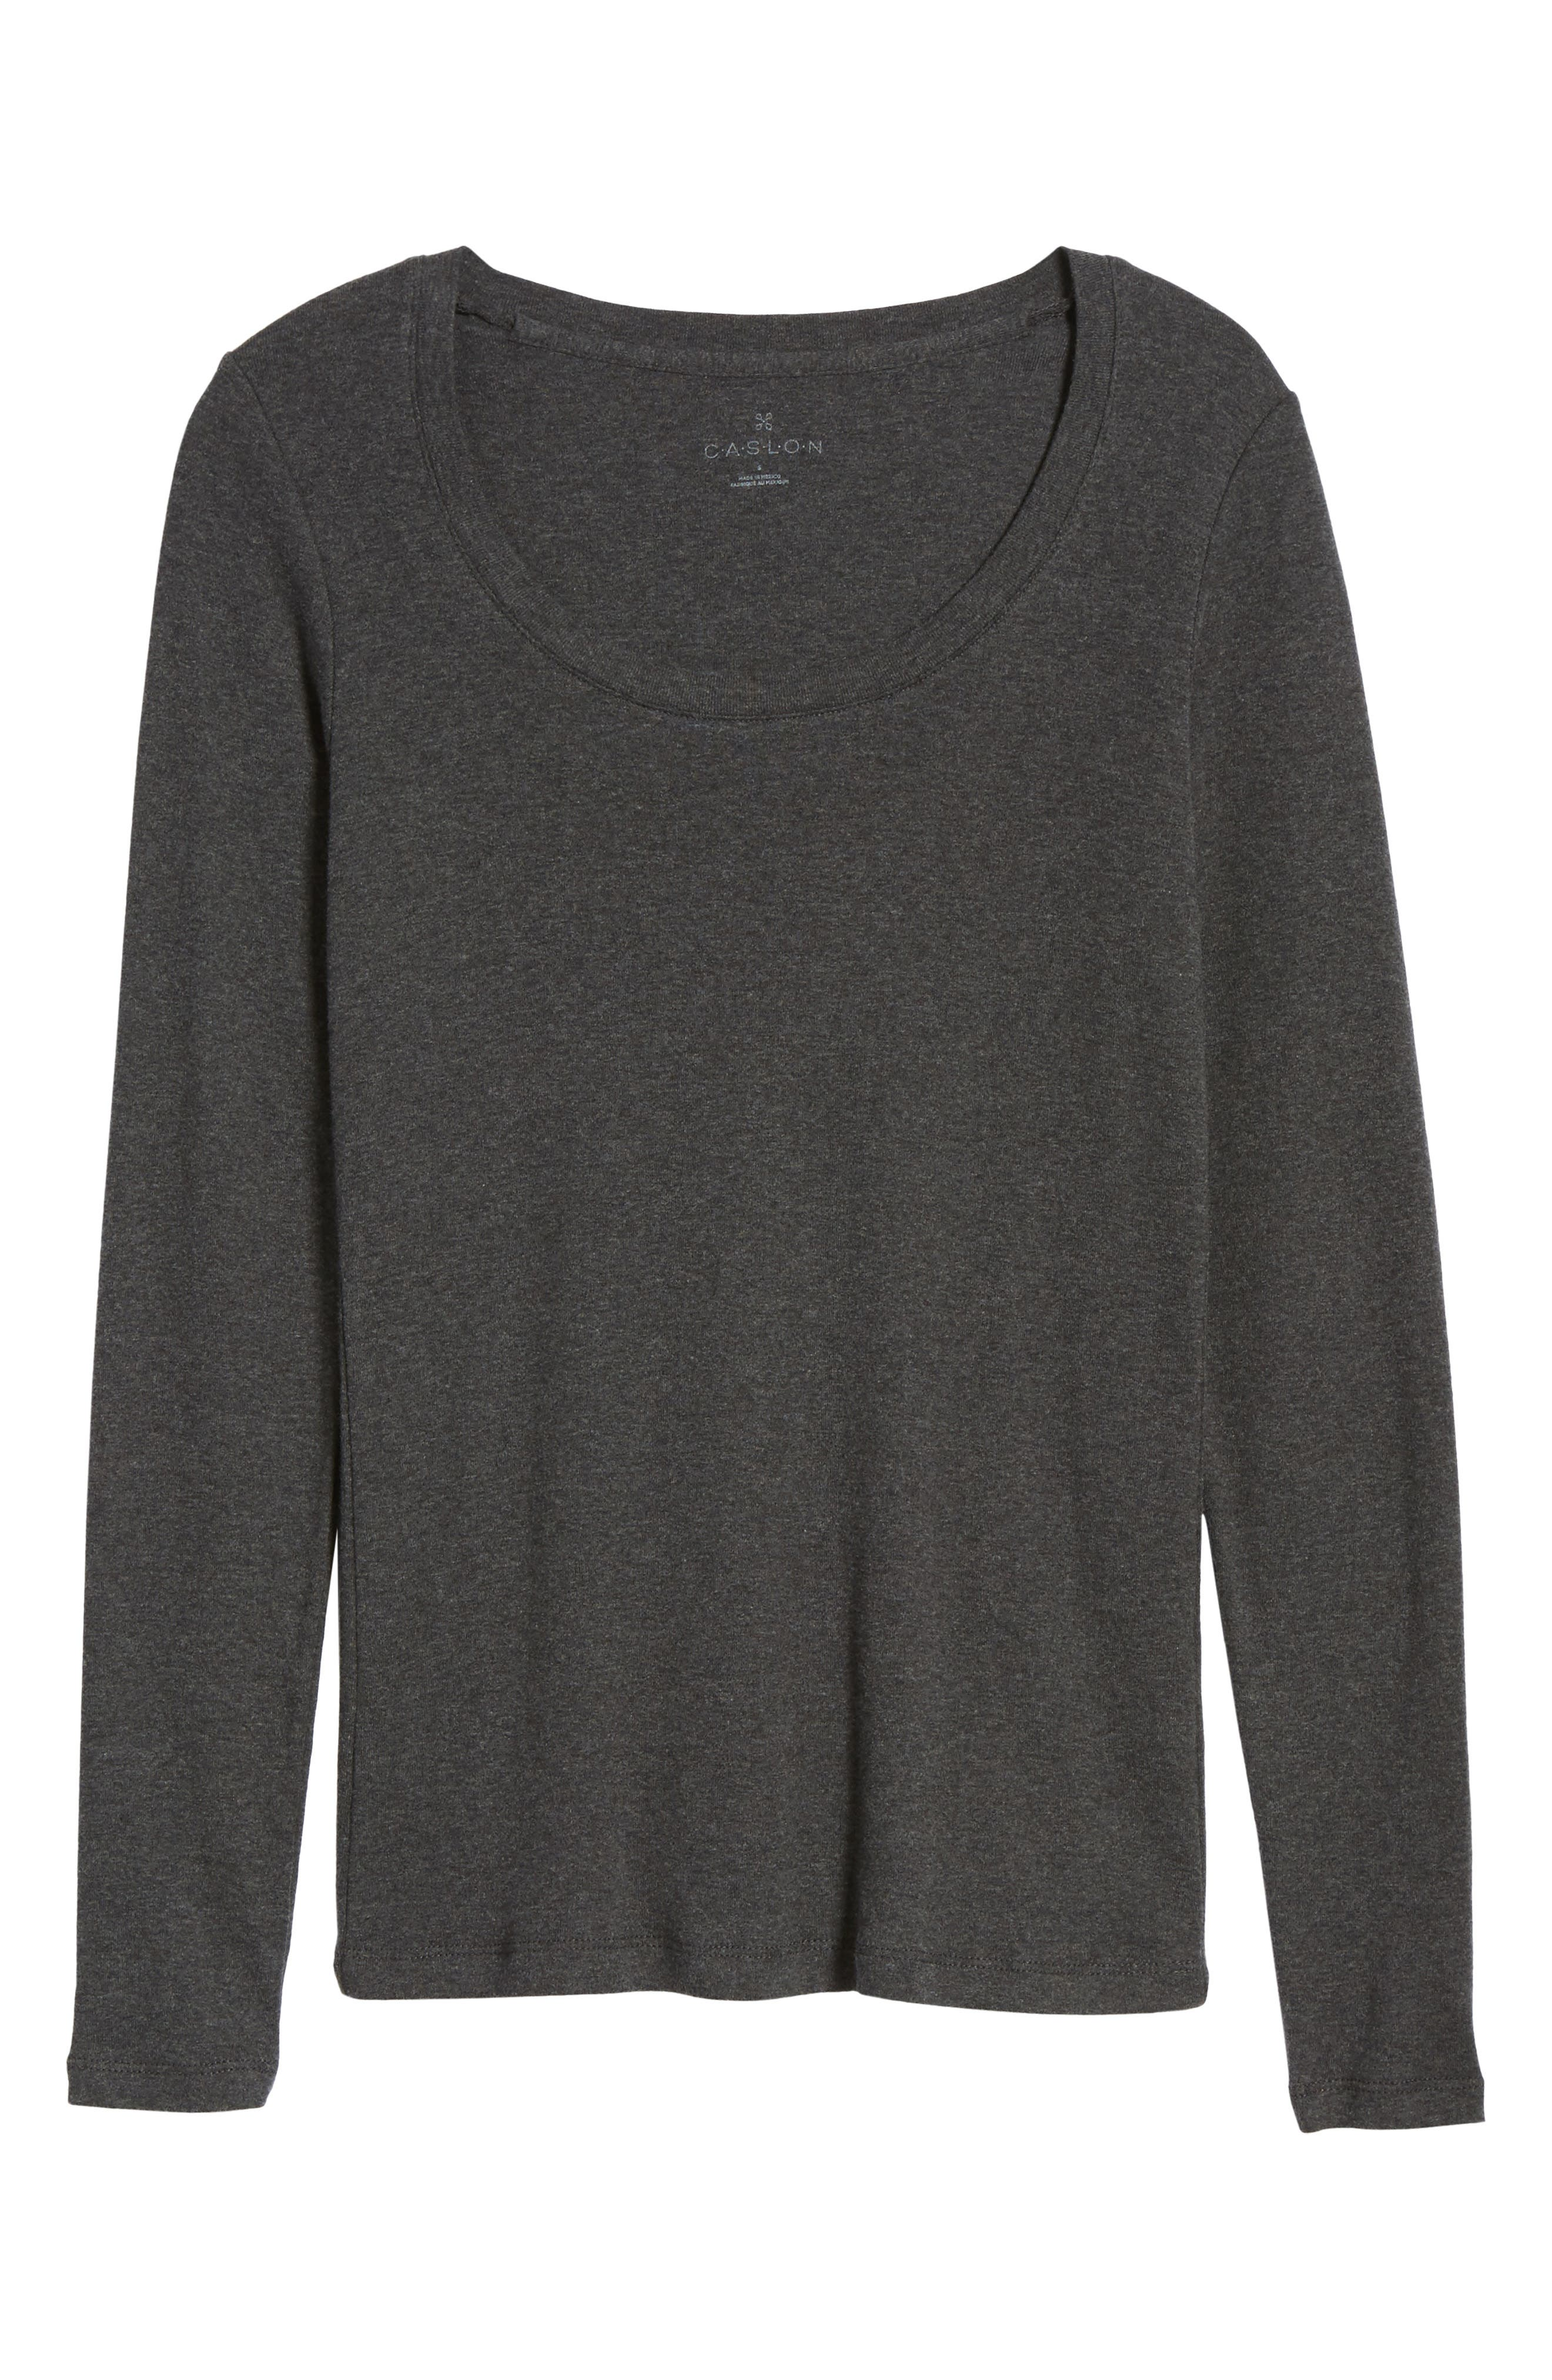 'Melody' Long Sleeve Scoop Neck Tee,                             Alternate thumbnail 7, color,                             HEATHER CHARCOAL